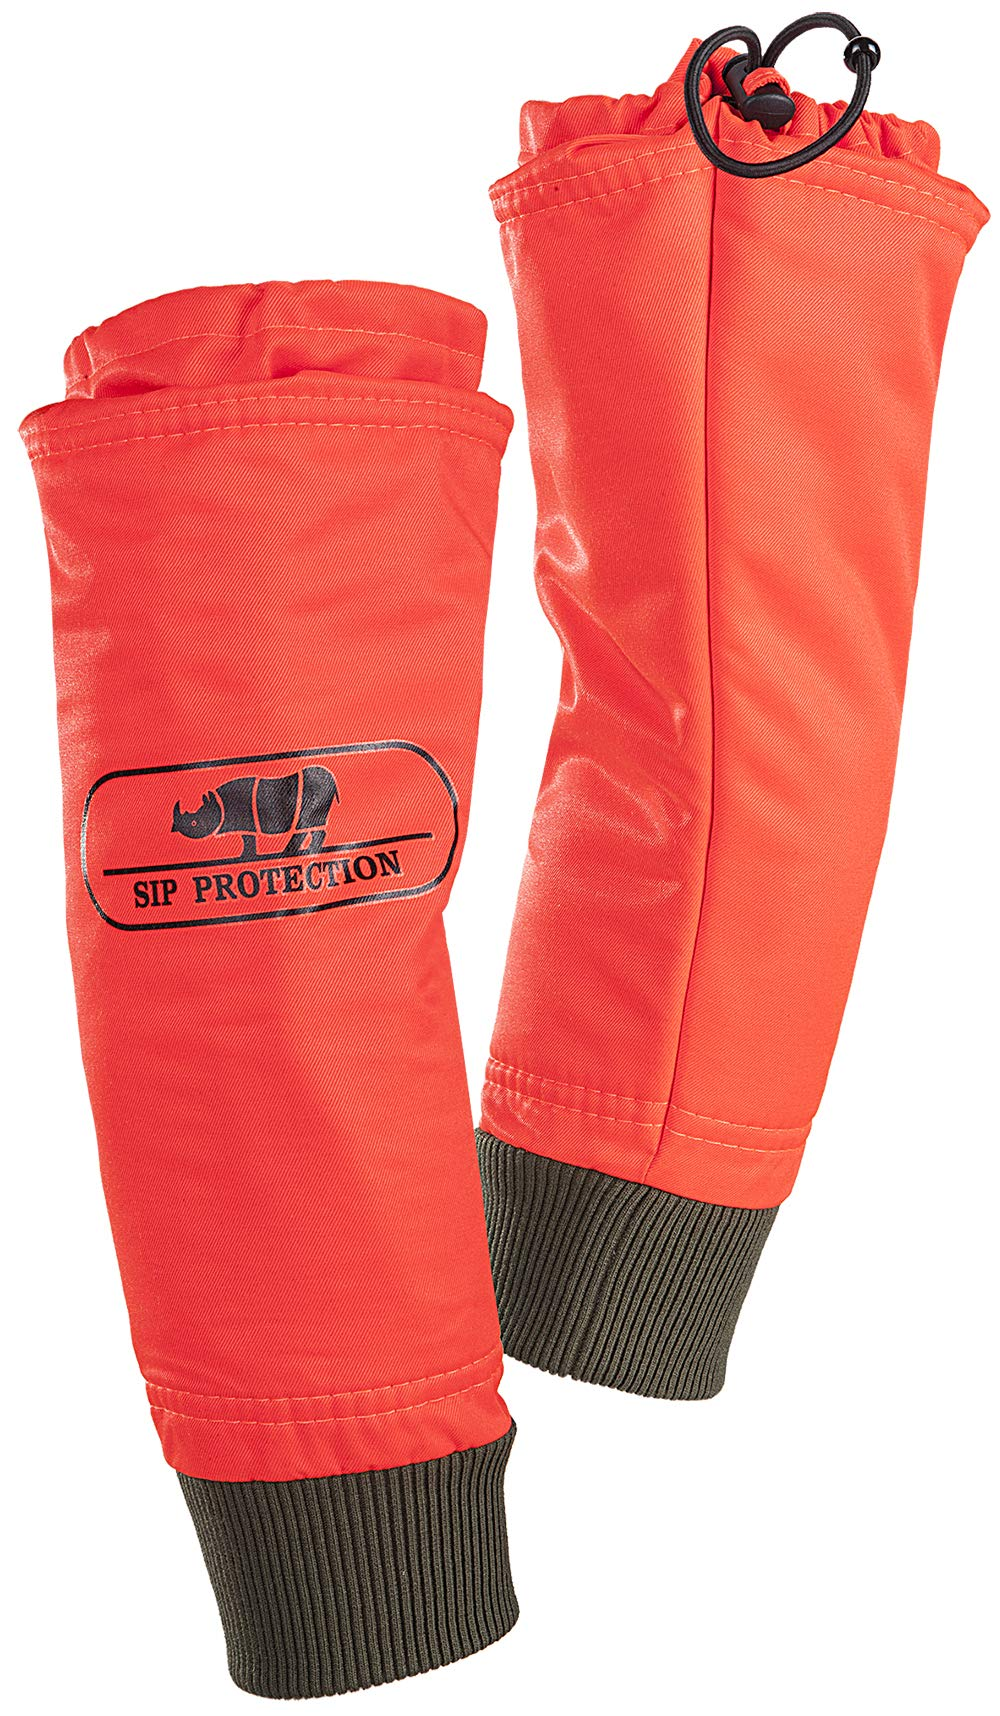 SIP Protection Arborist Sleeve Chainsaw Protection with Elastic Cord (X-Large)